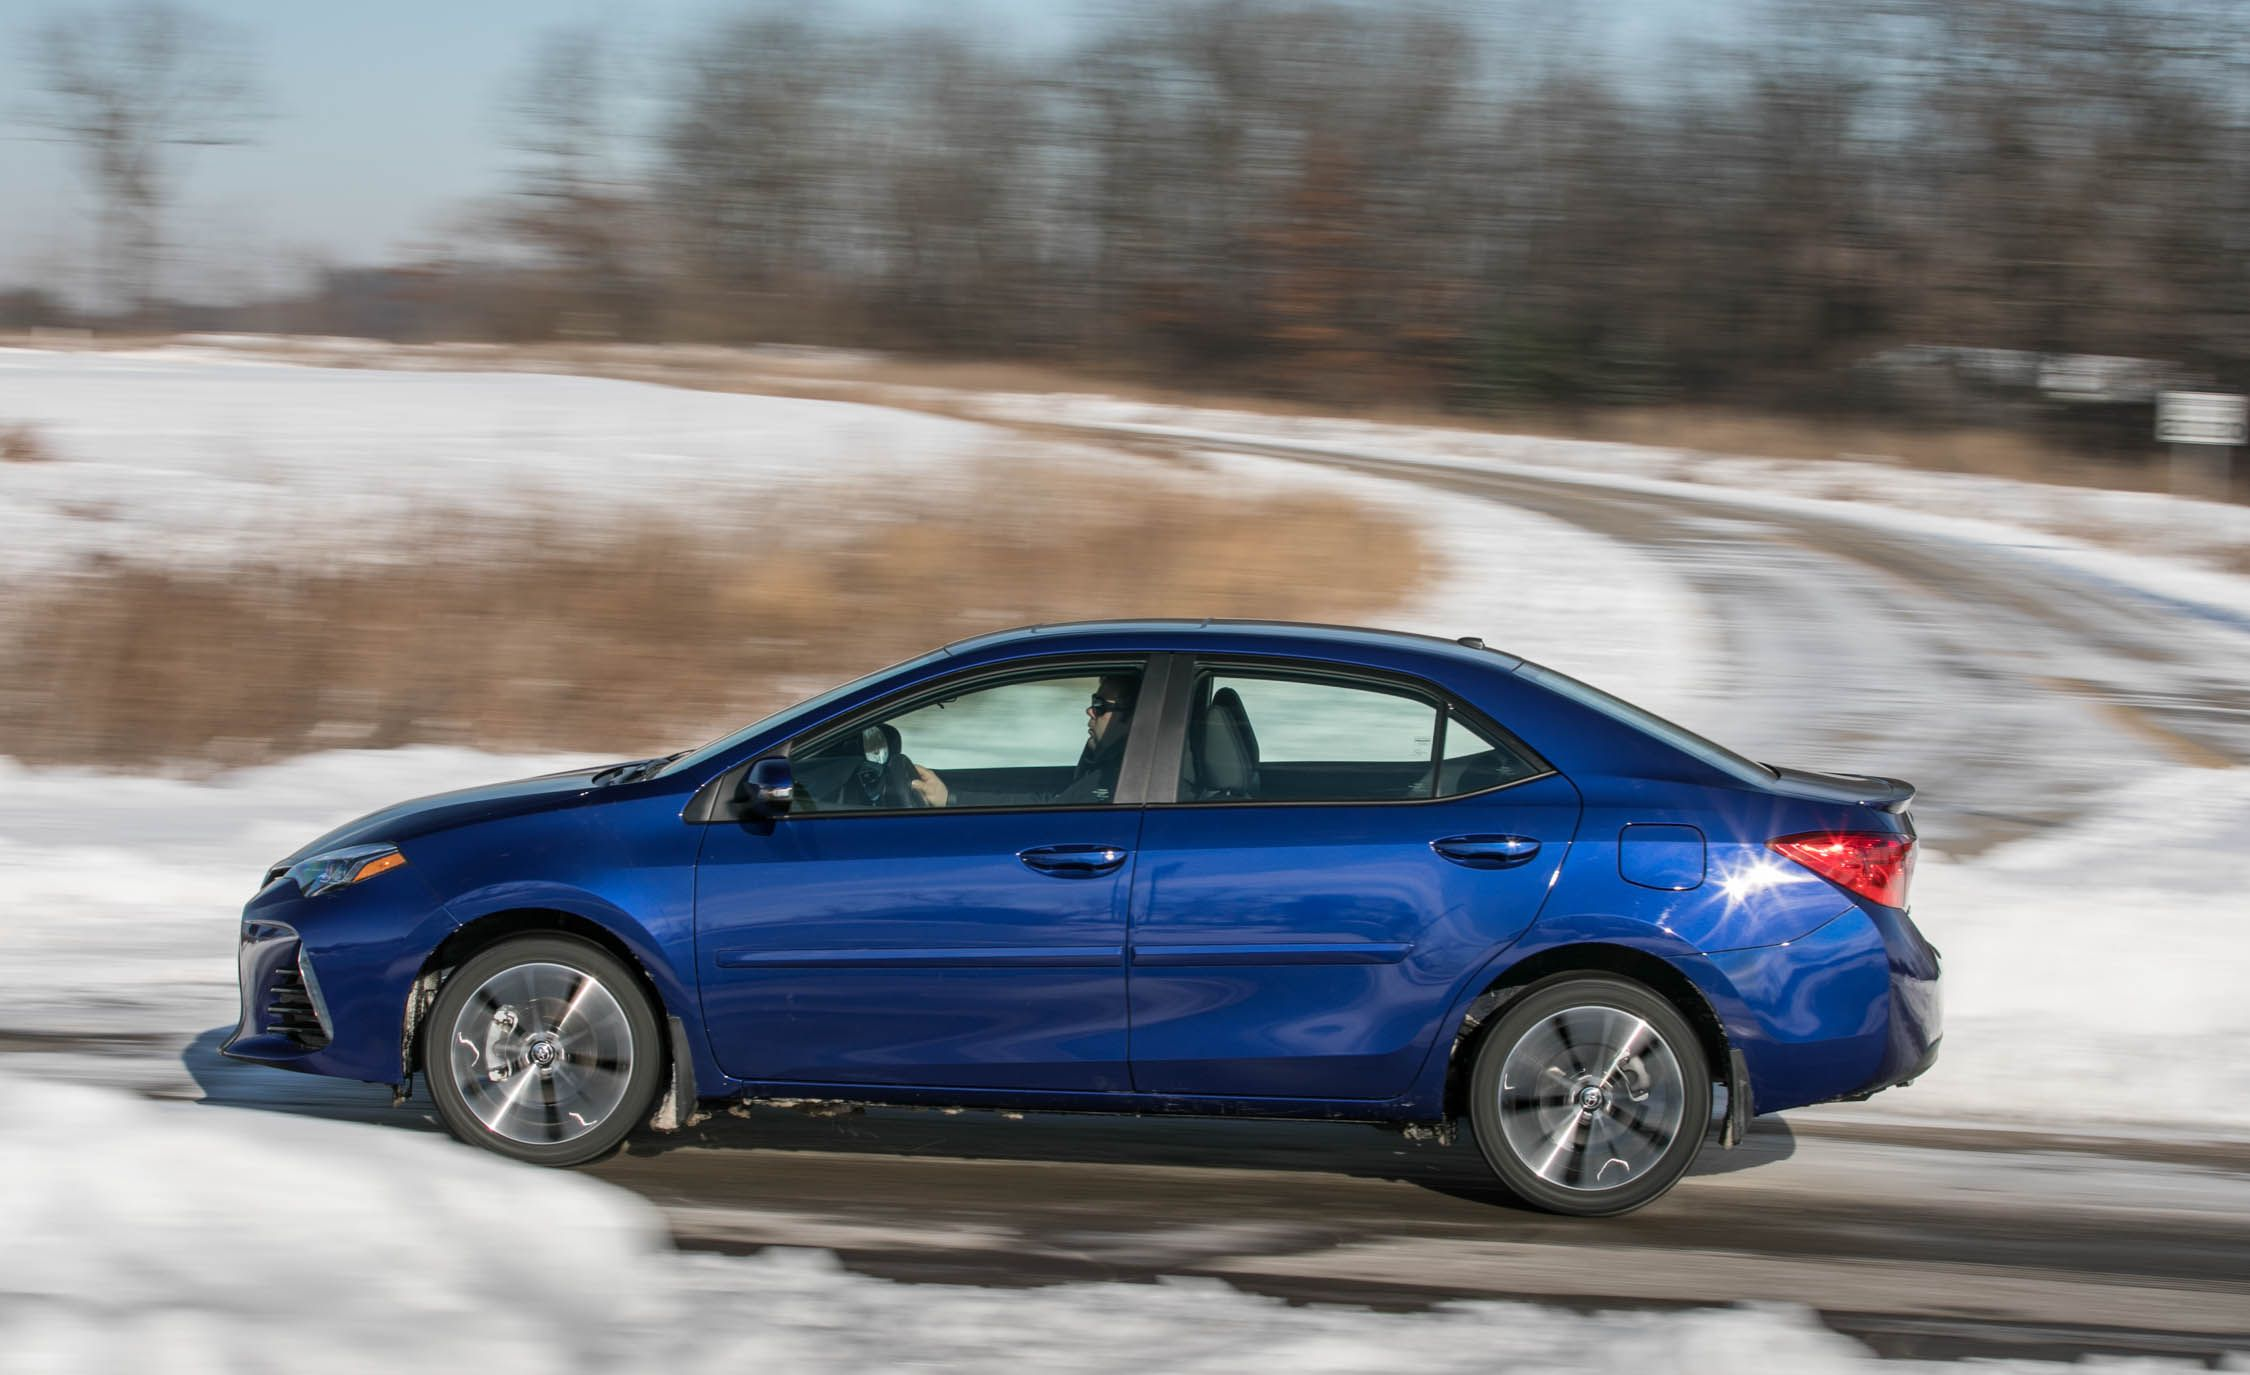 Toyota Corolla Reviews   Toyota Corolla Price, Photos, and Specs   Car and  Driver